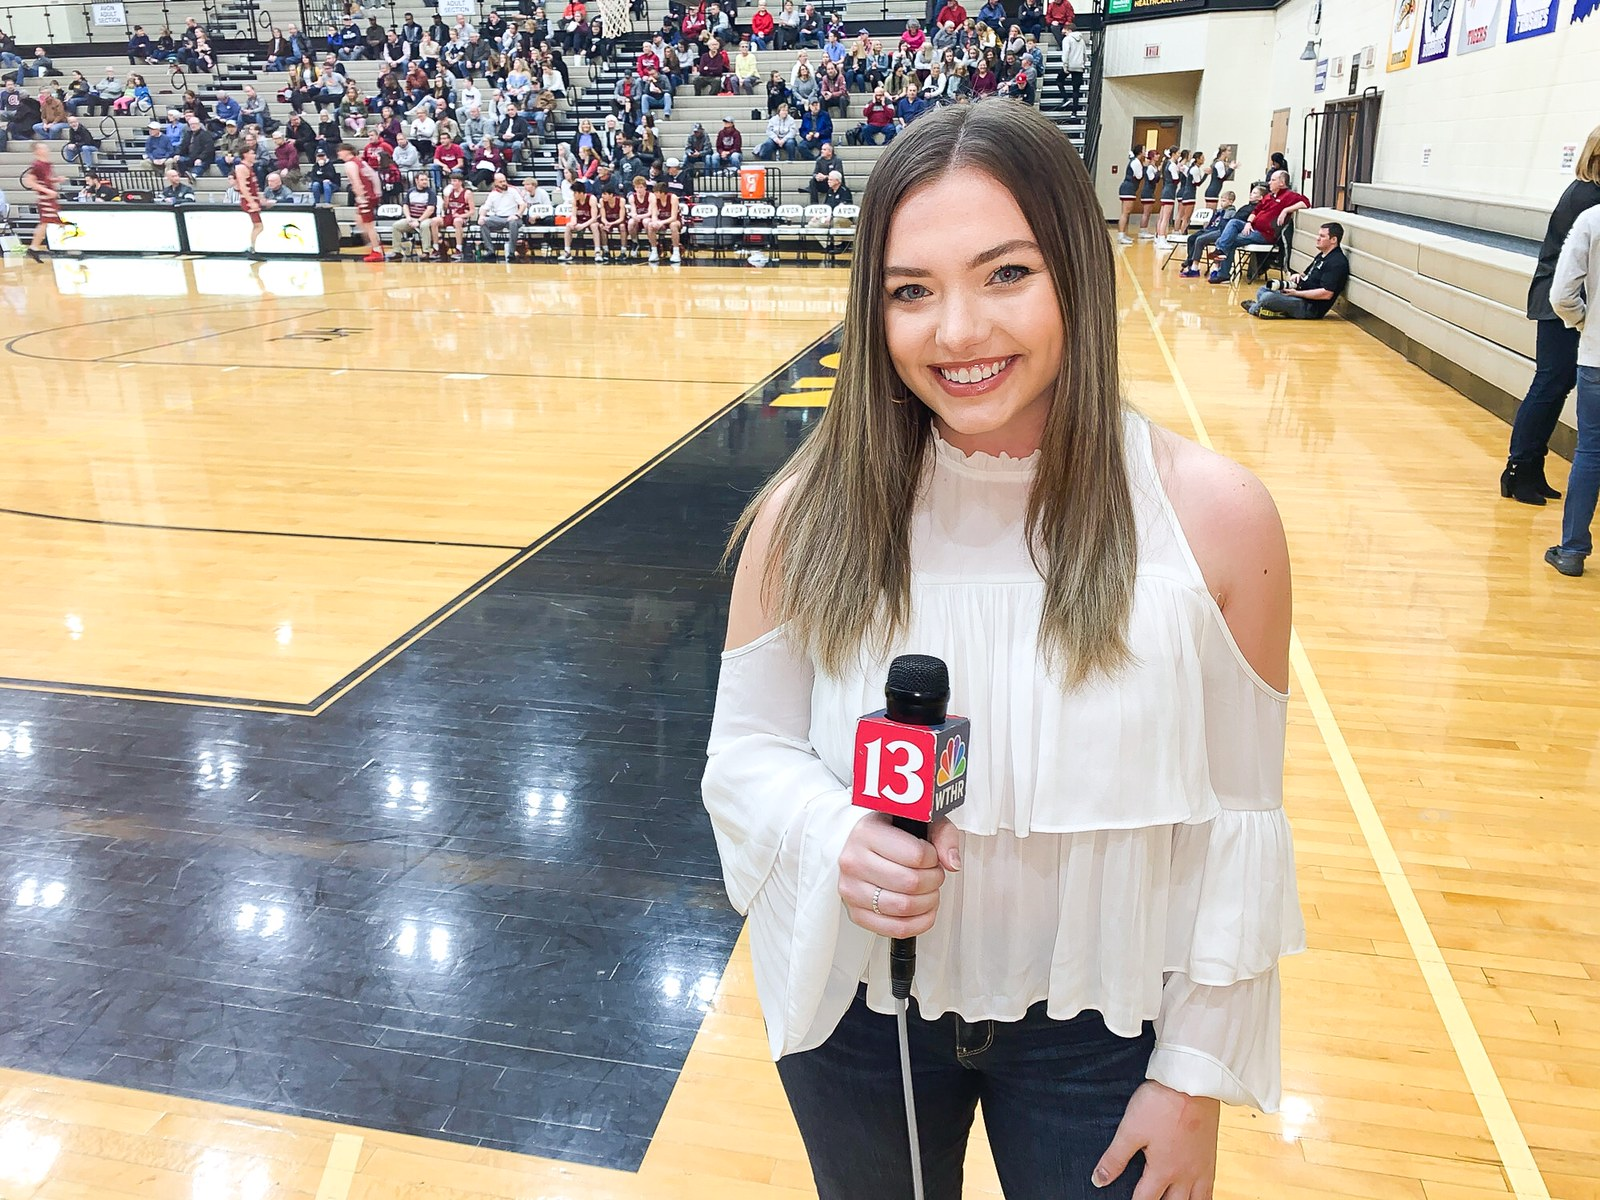 Kasper reporting at a basketball game